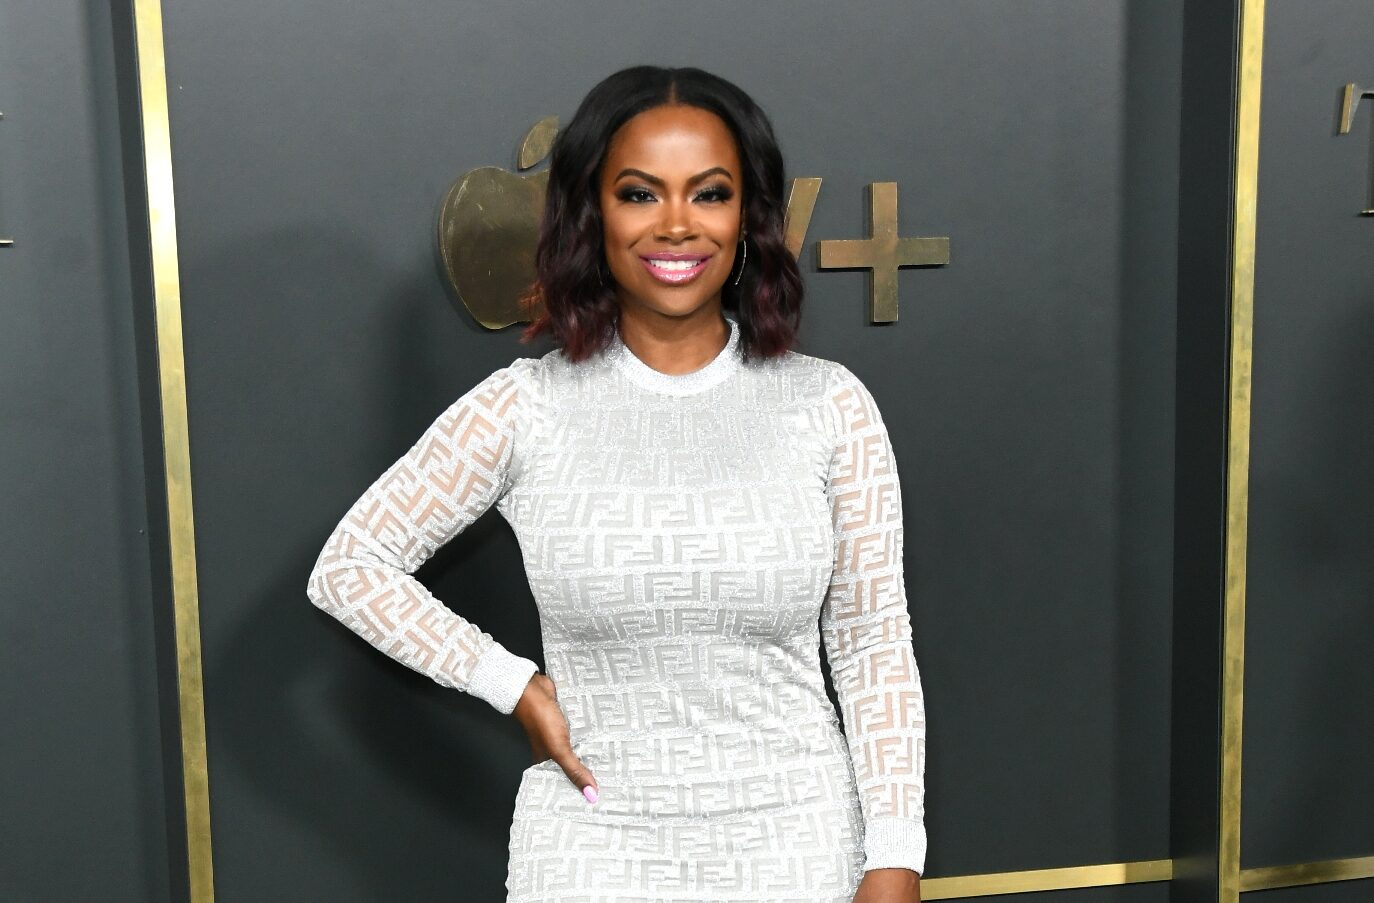 Kandi Burruss Celebrates The Birthday Of Her Friend Following The Tragedy At Old Lady Gang